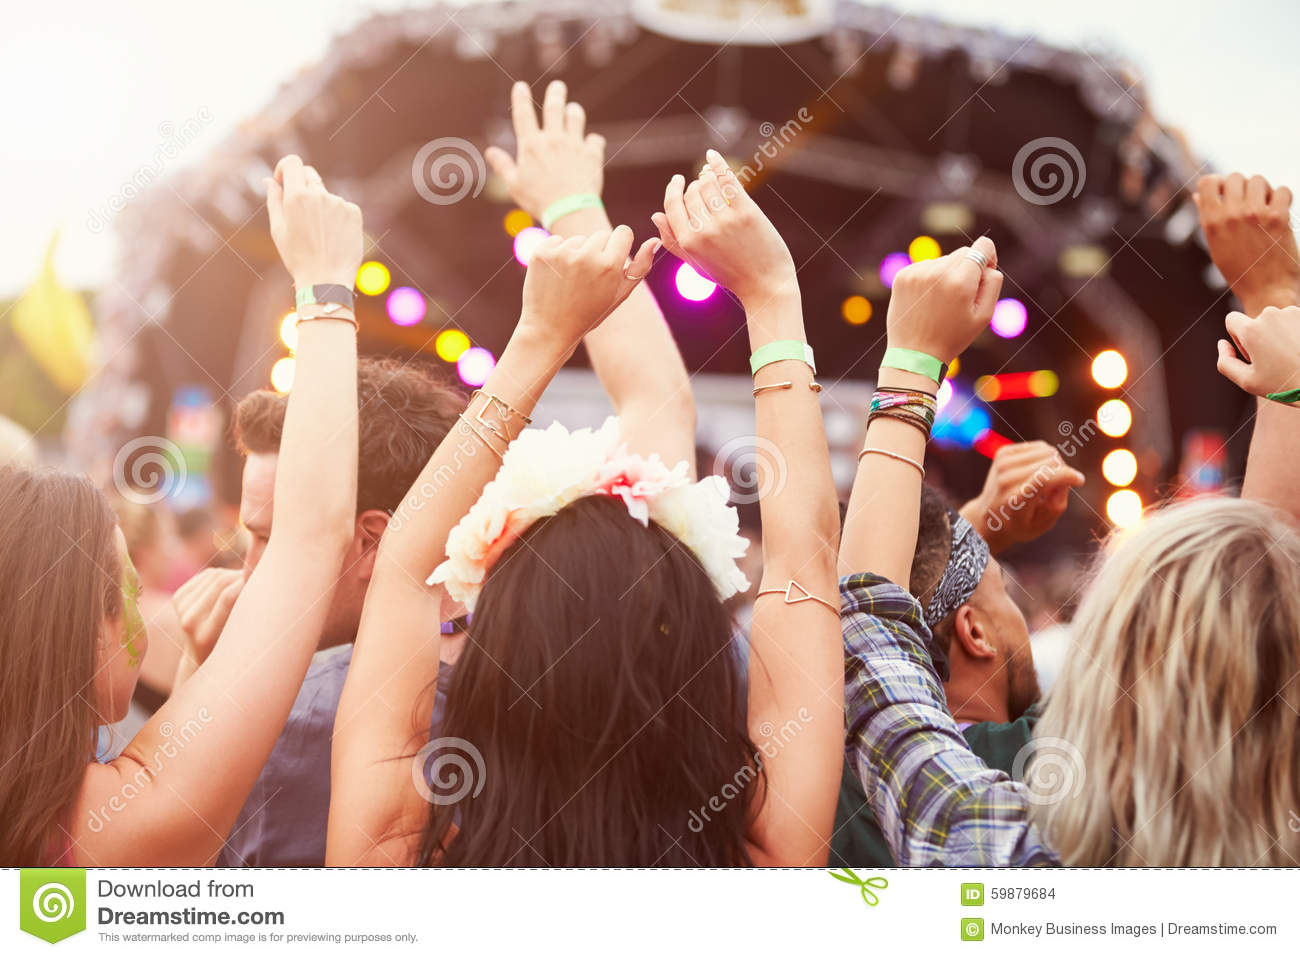 Download Audience With Hands In The Air At A Music Festival Stock Photo - Image of incidental, performance: 59879684